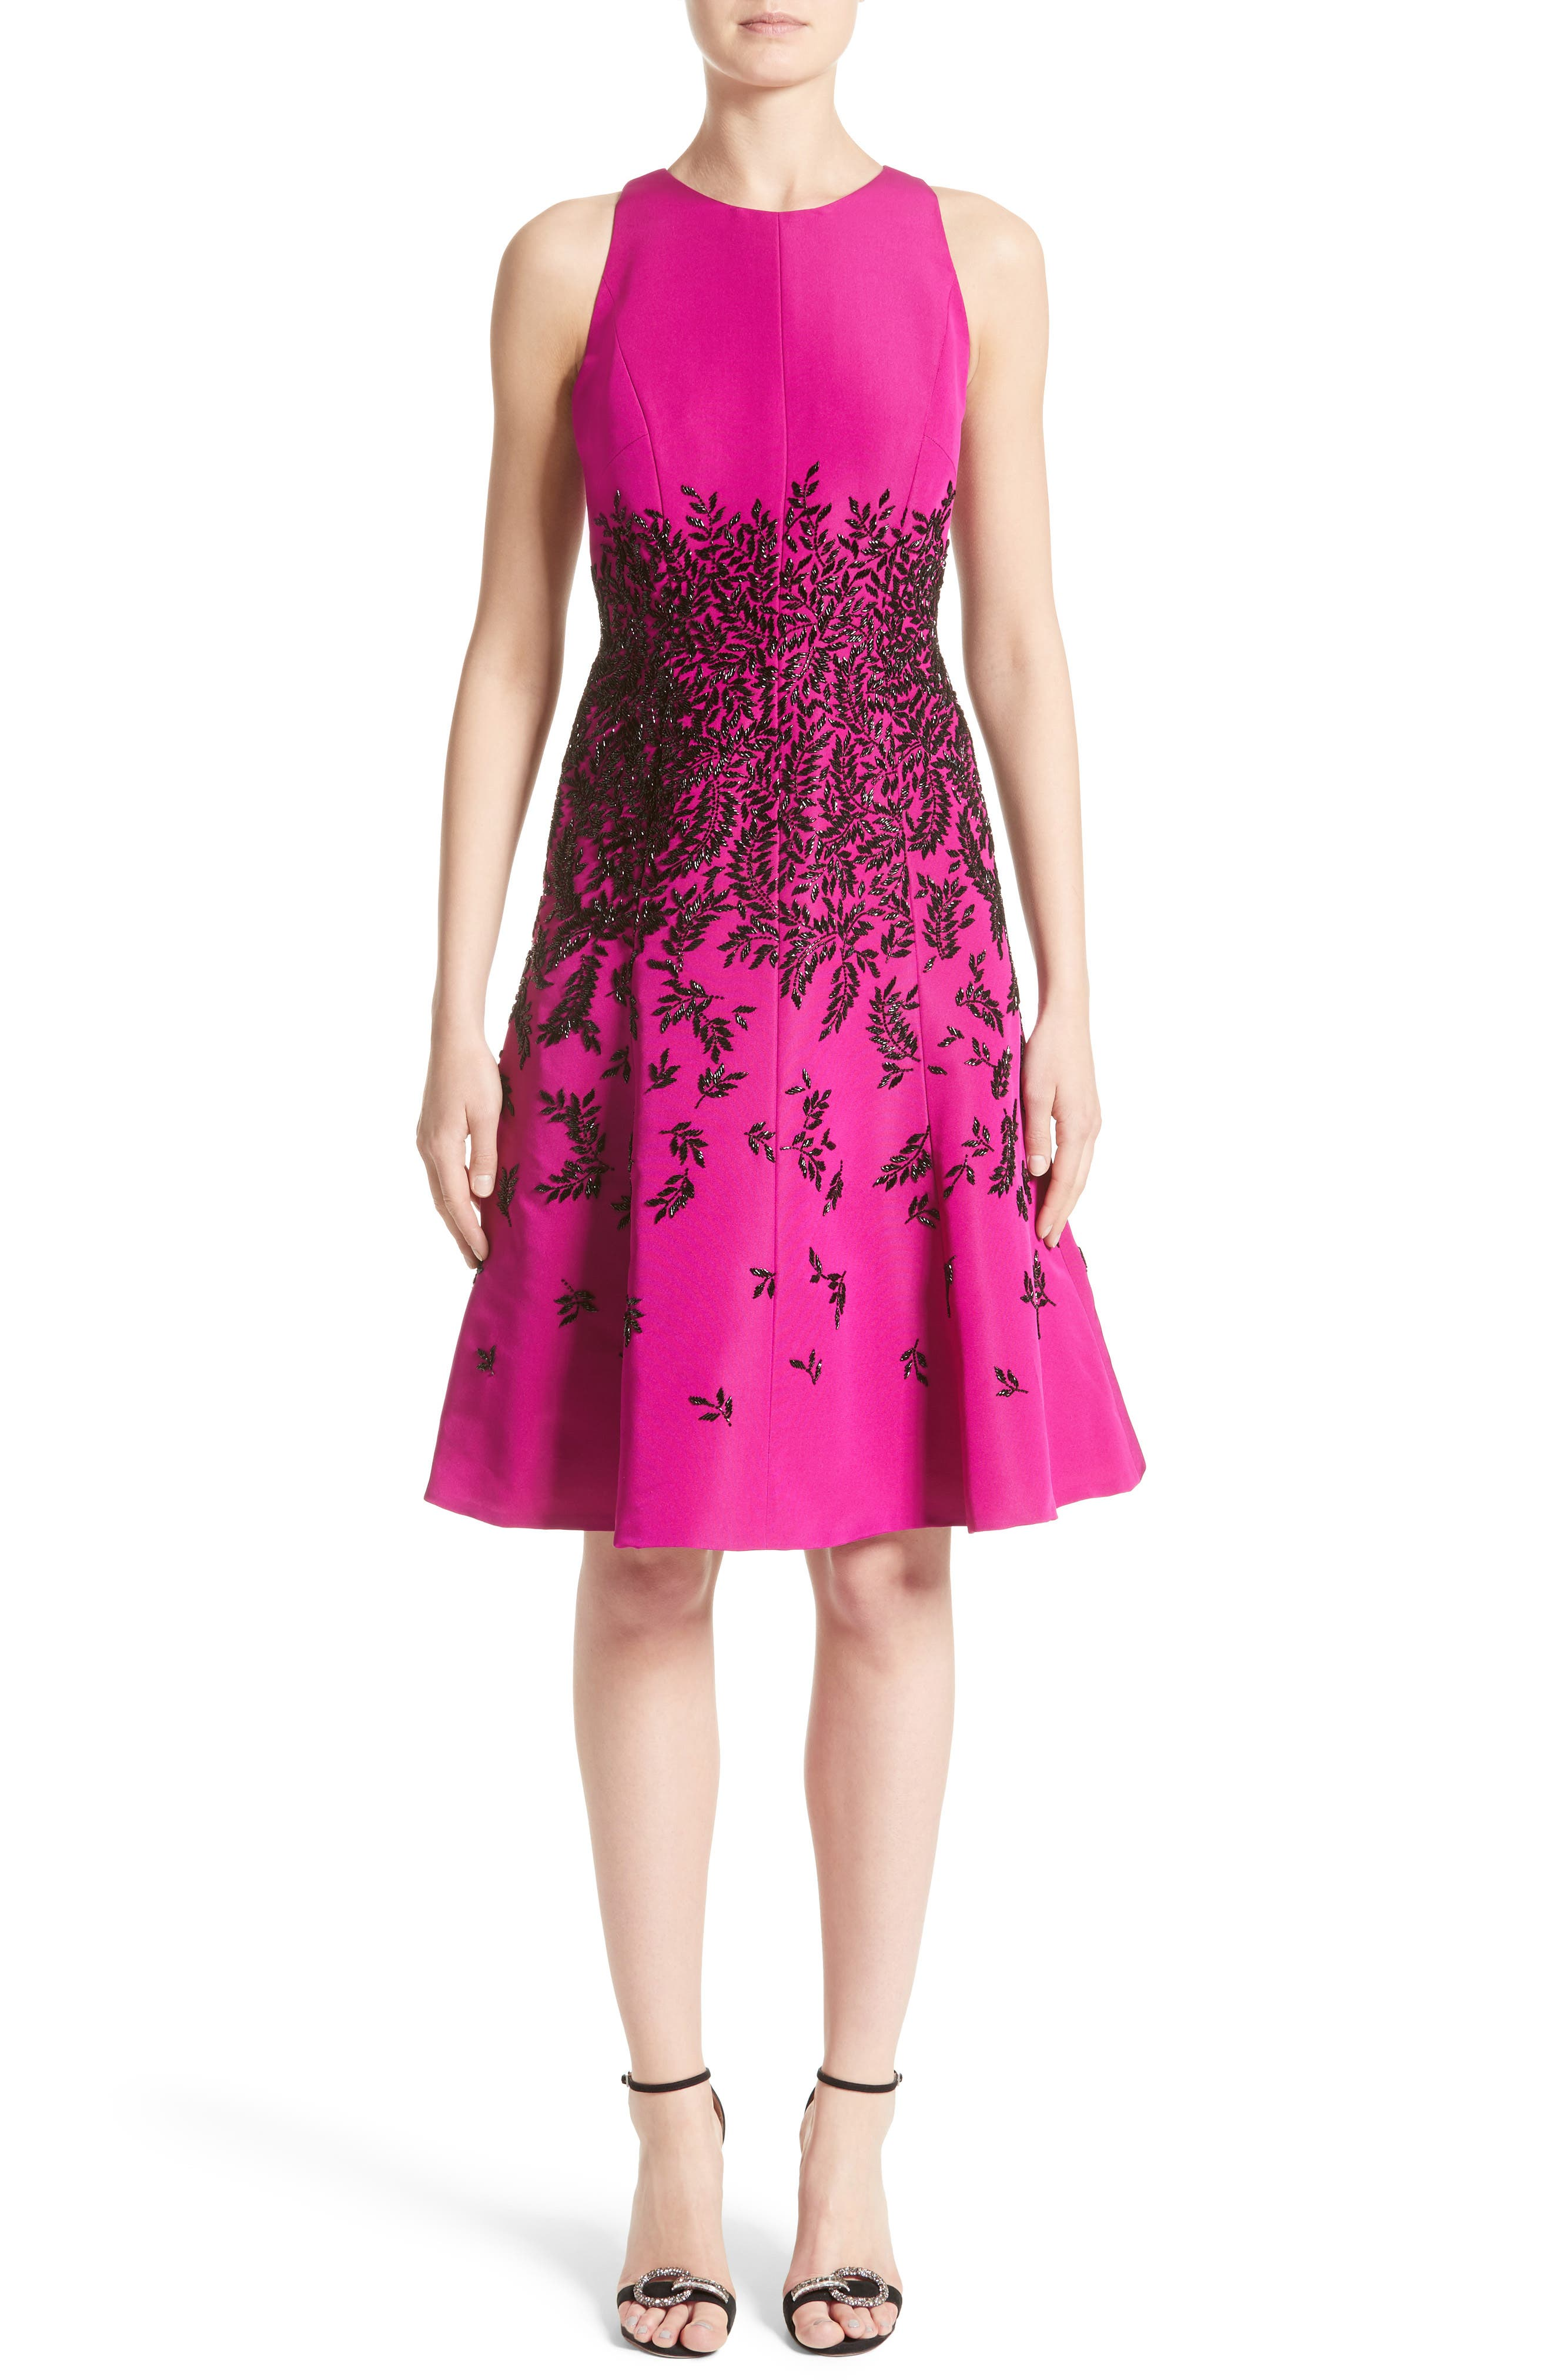 Alternate Image 1 Selected - Carmen Marc Valvo Couture Beaded Fit & Flare Dress